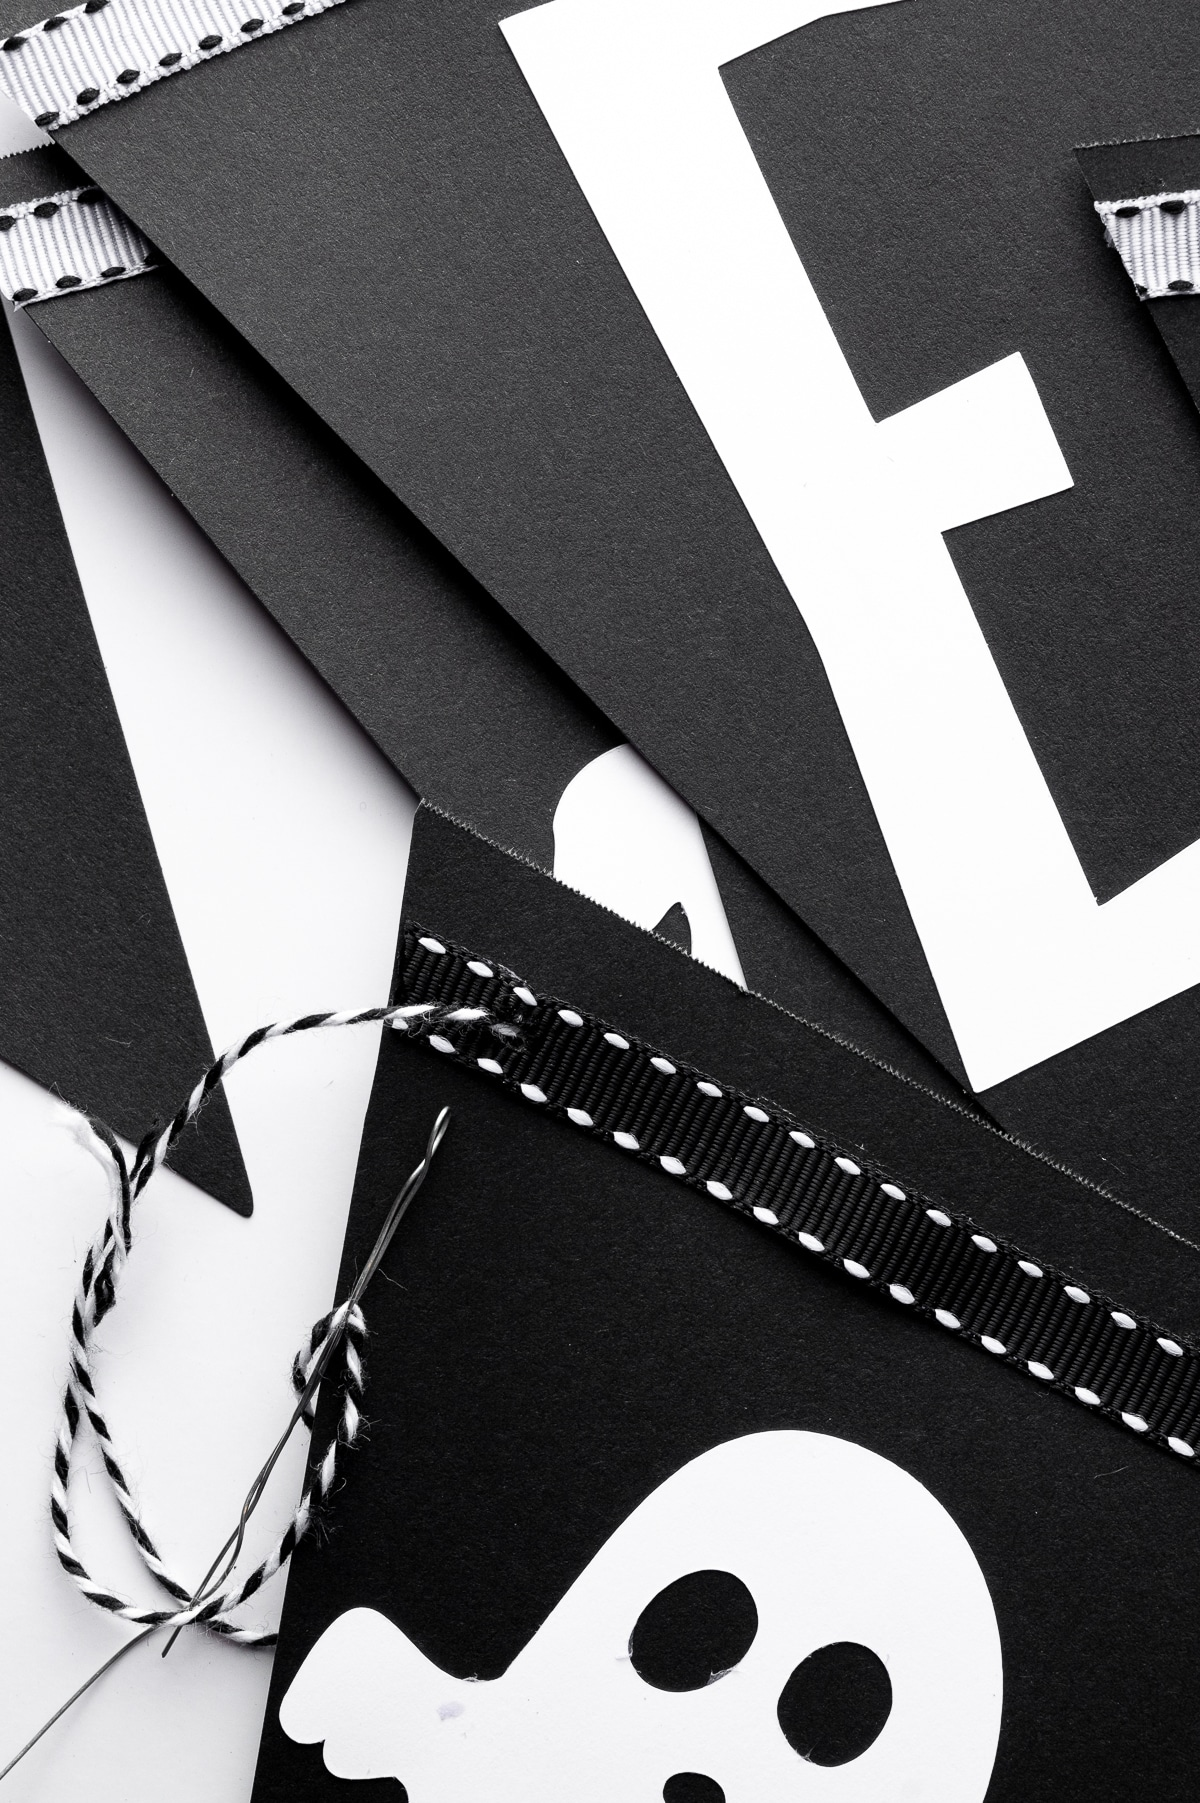 Black bunting triangles with white cut out lettering against a bright white background.  Butchers twine is being weaved through the punched holes